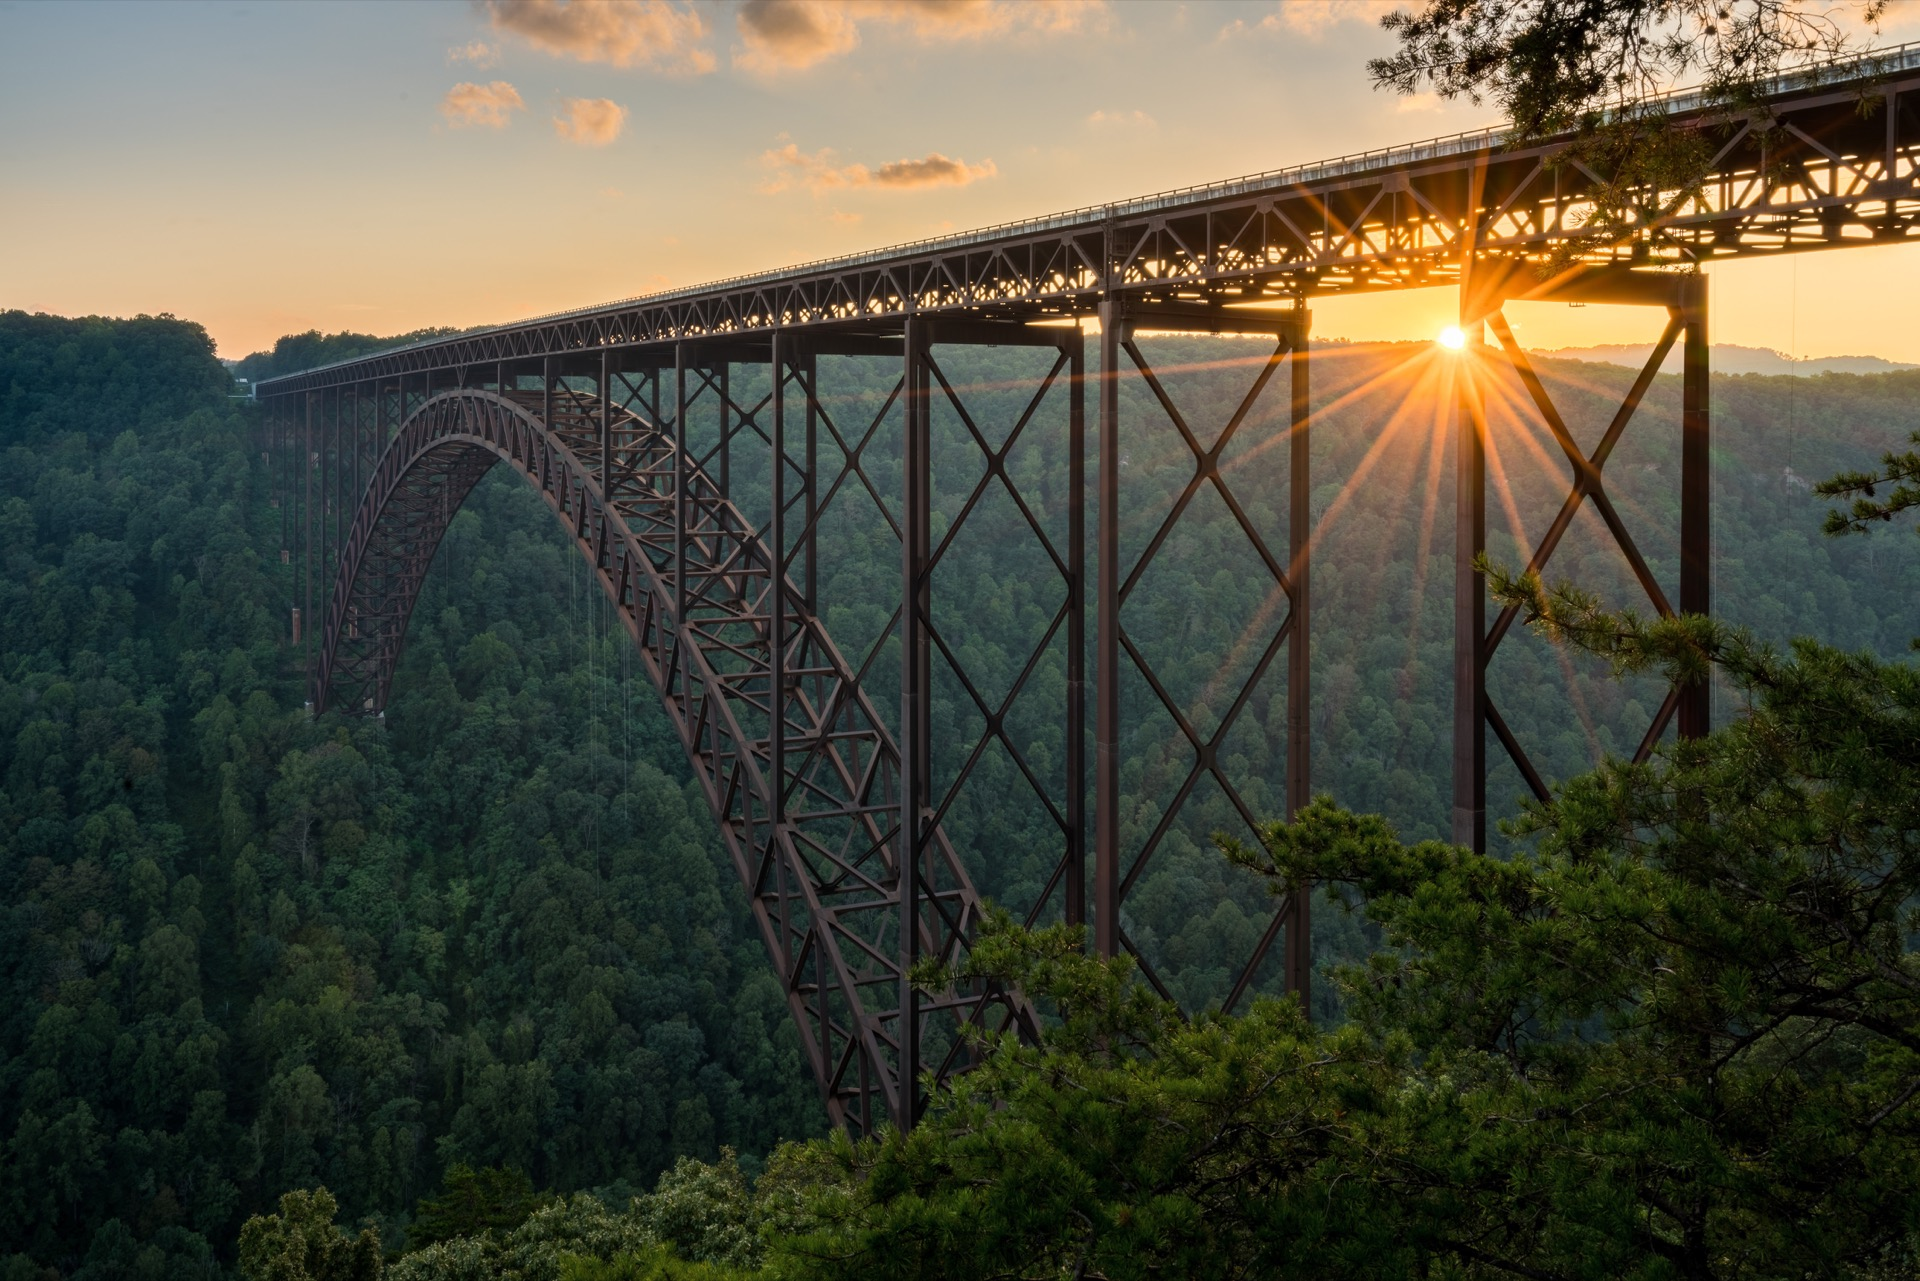 A scenic view of West Virginia